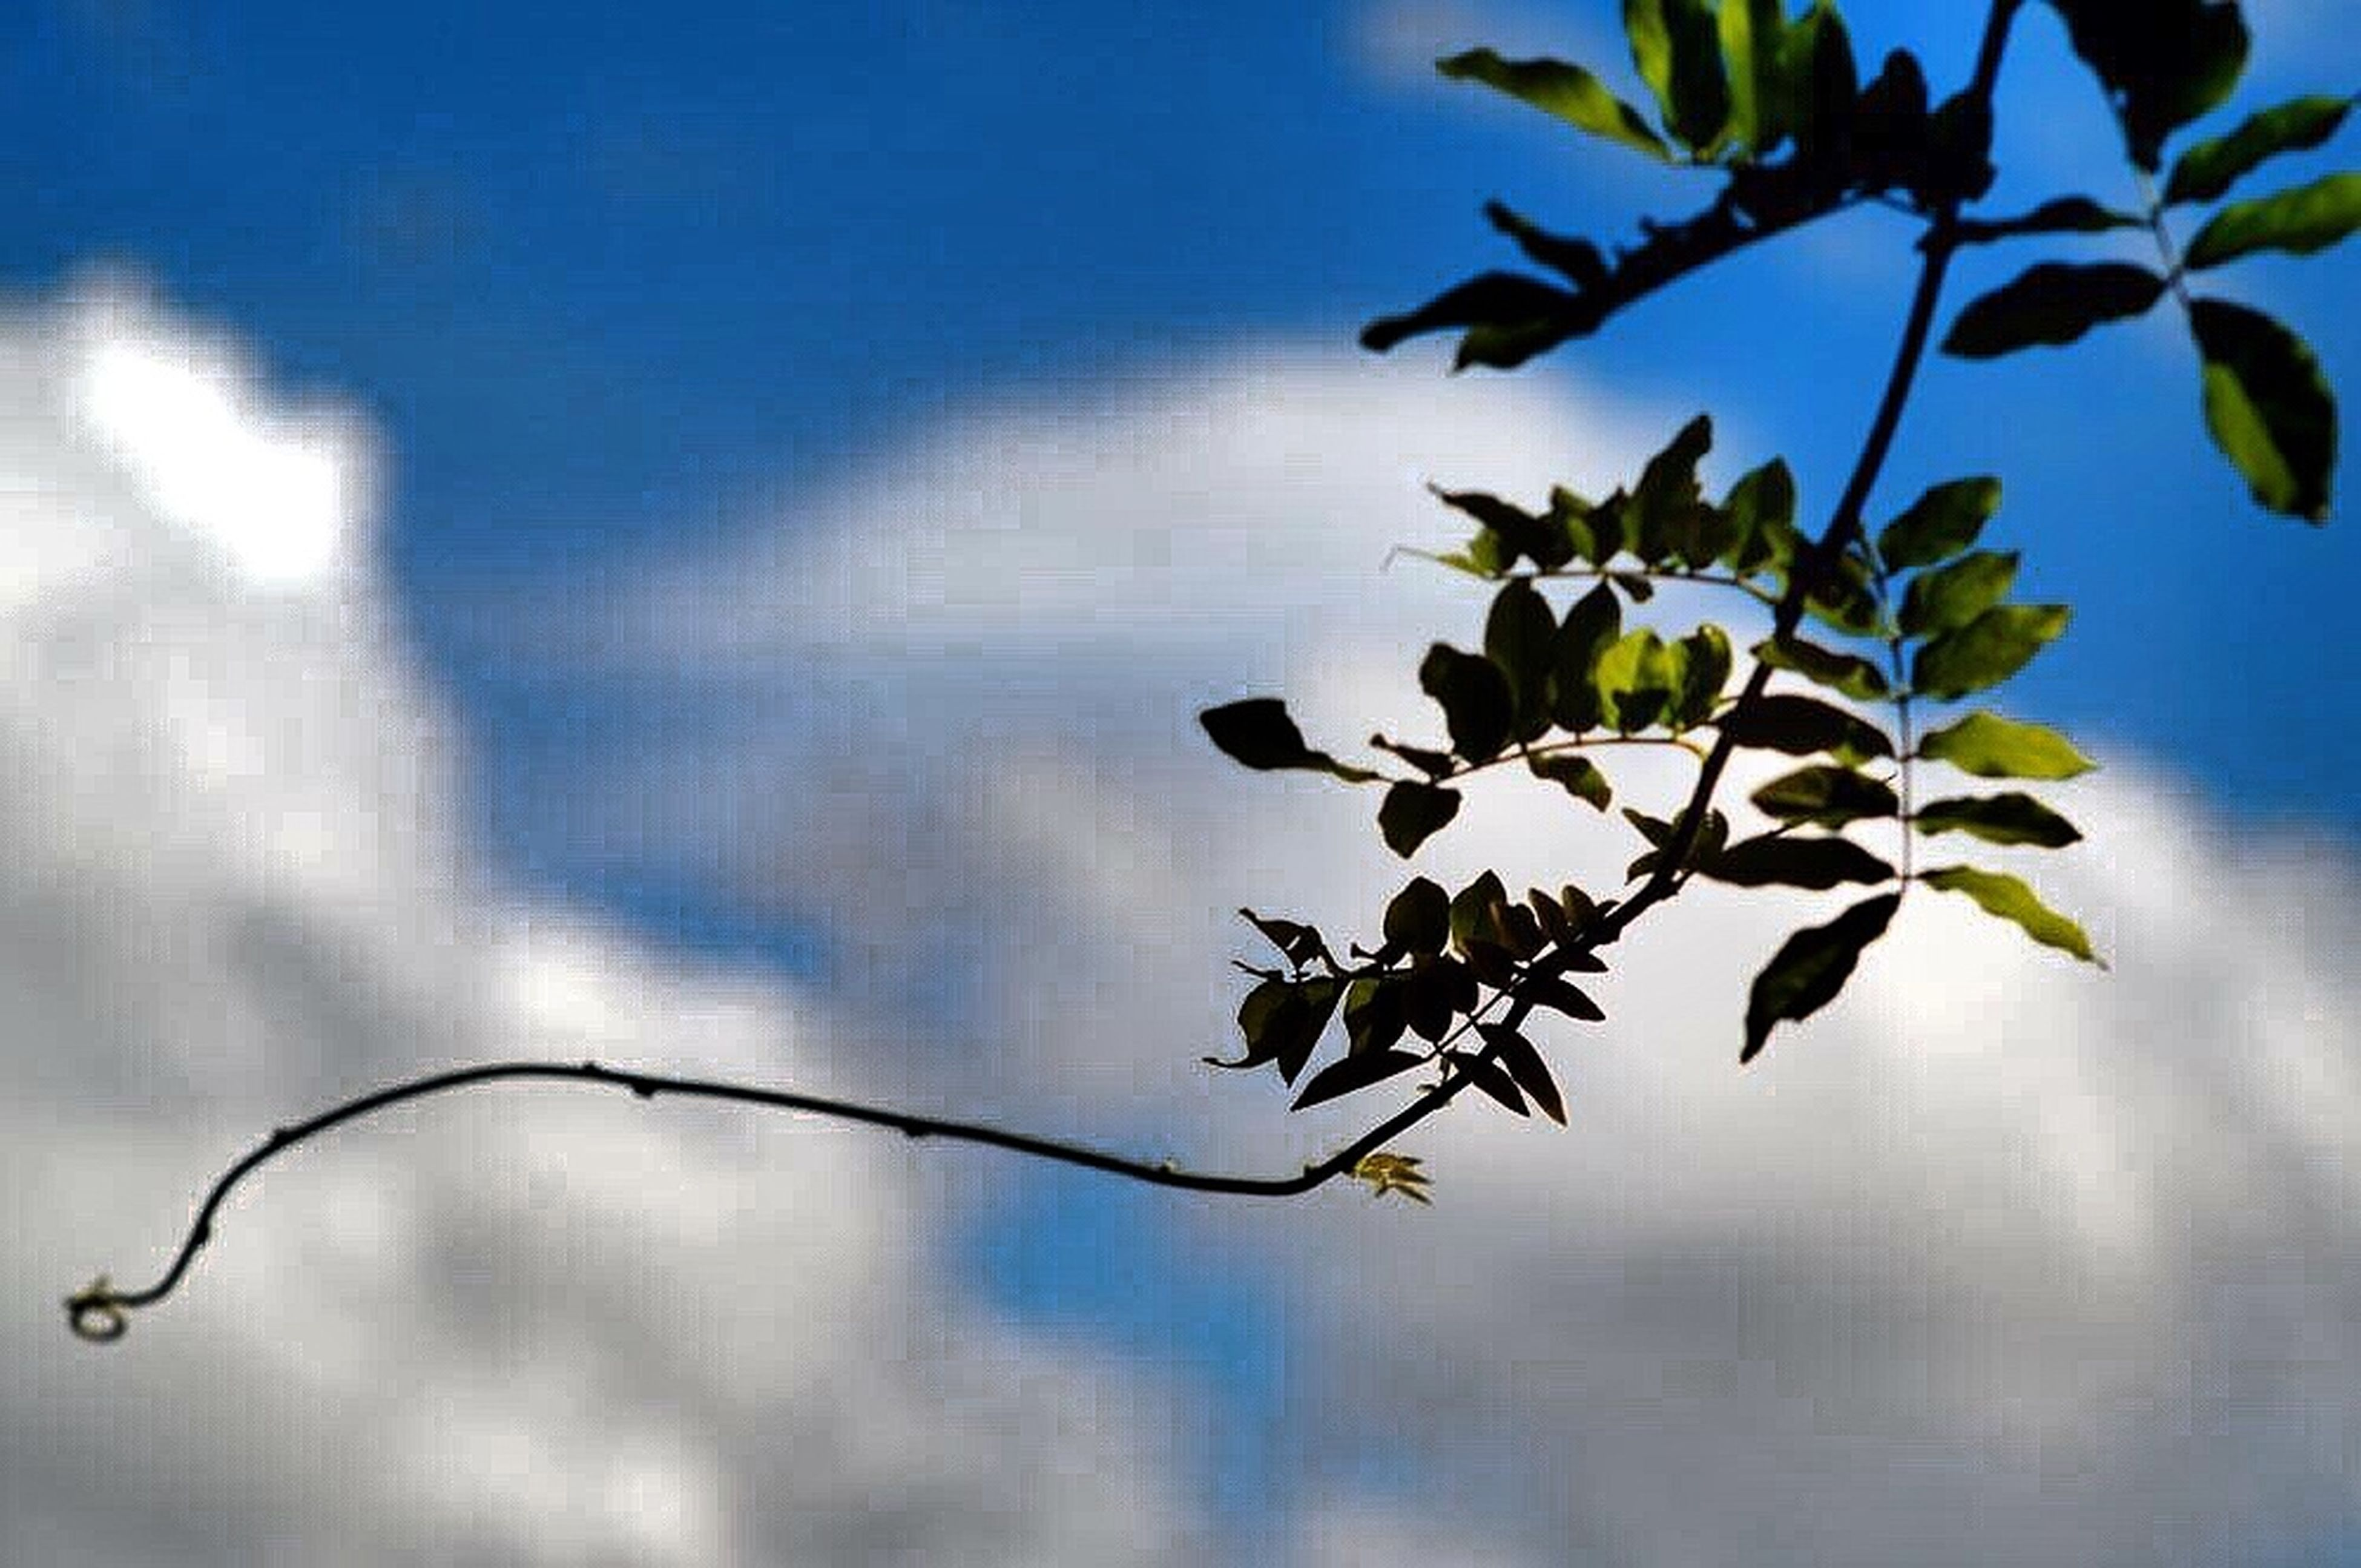 low angle view, branch, growth, leaf, nature, twig, sky, stem, plant, tree, beauty in nature, focus on foreground, close-up, freshness, flower, fragility, no people, day, outdoors, bud